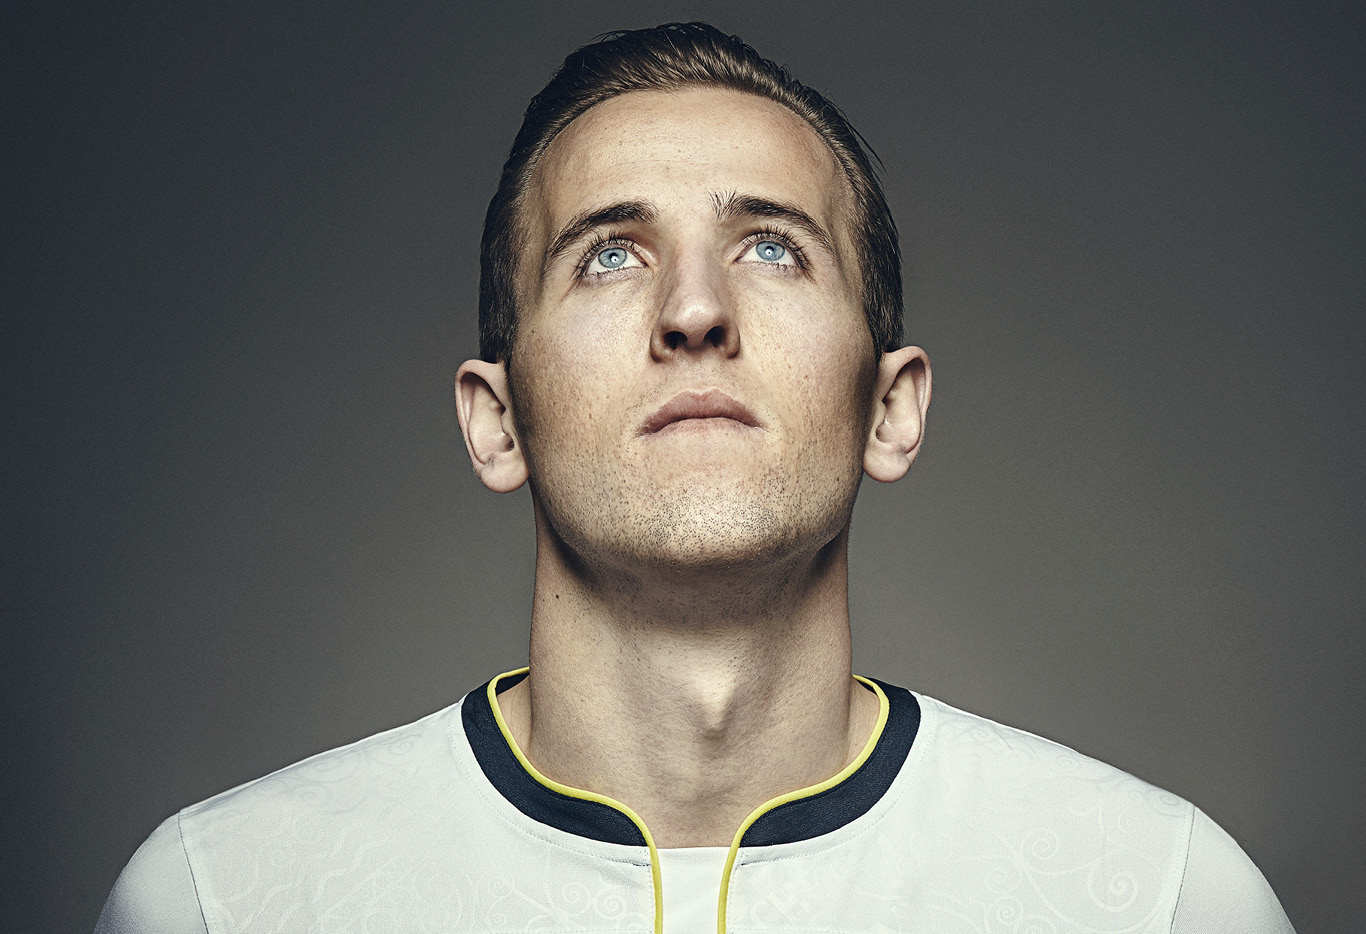 Harry Kane has signed a new contract with Tottenham that will tie the striker to the London club until 2022